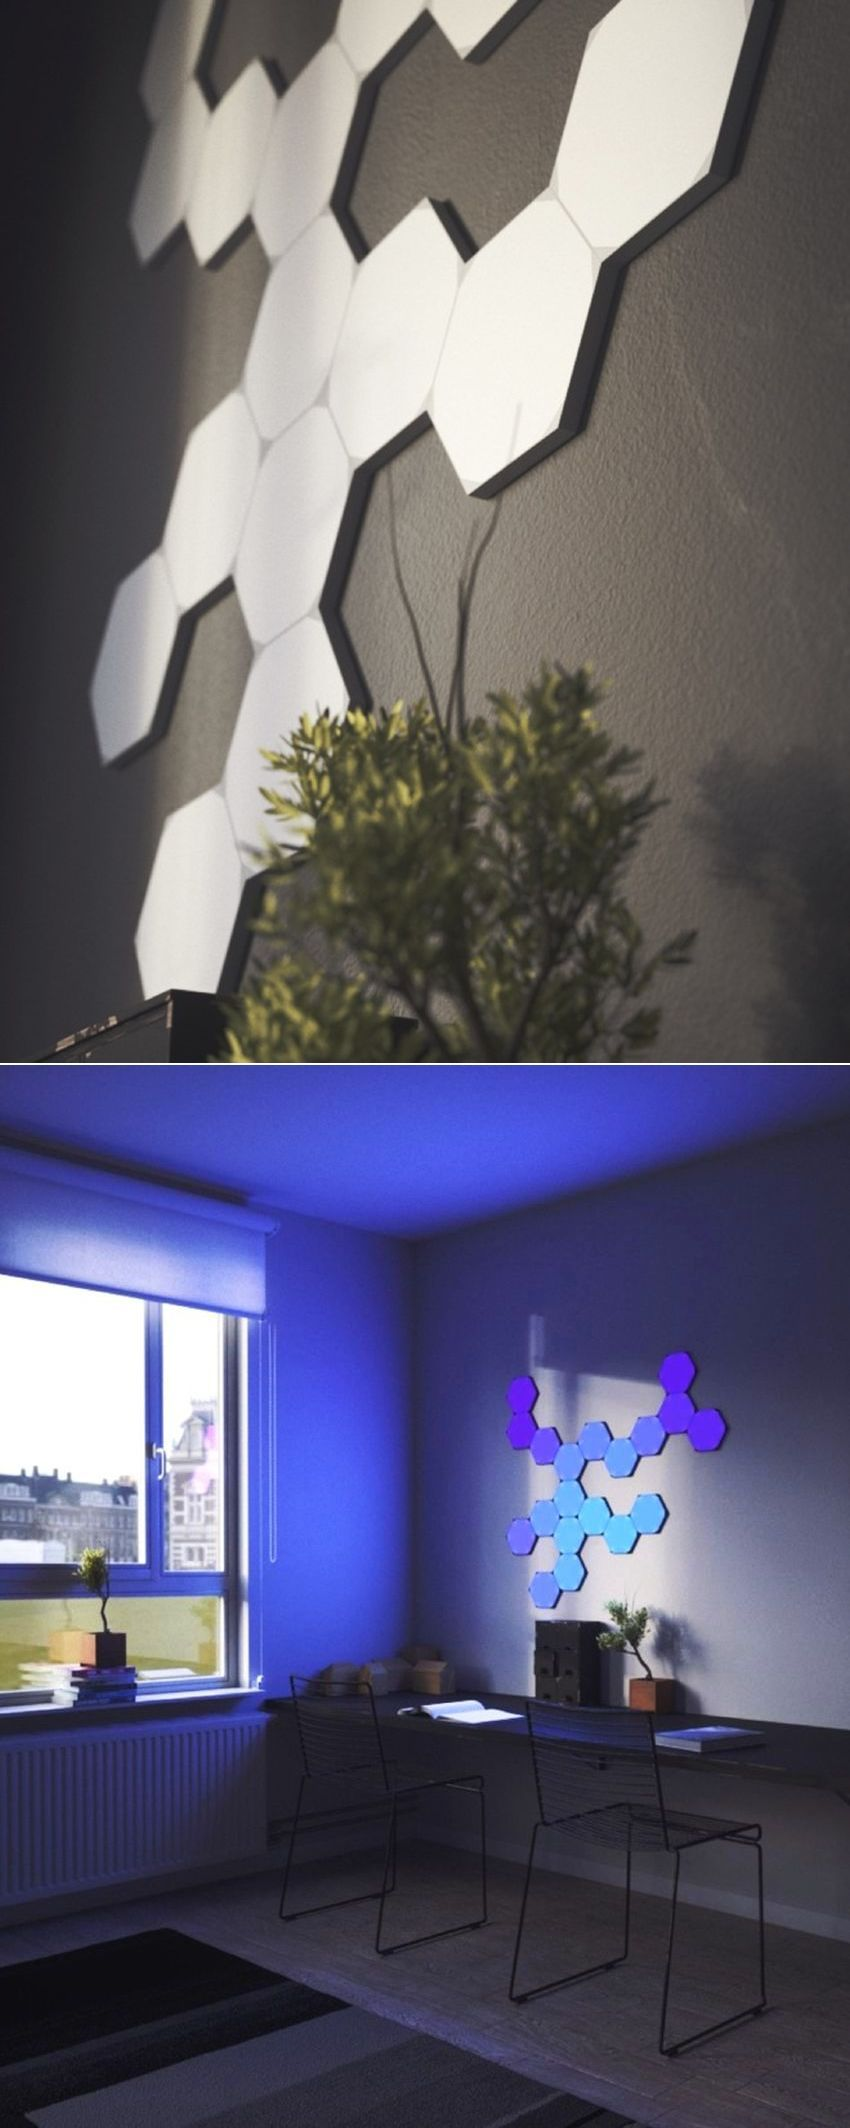 Nanoleaf HomeKitEnabled Hexagonal LED Light Panels at CES